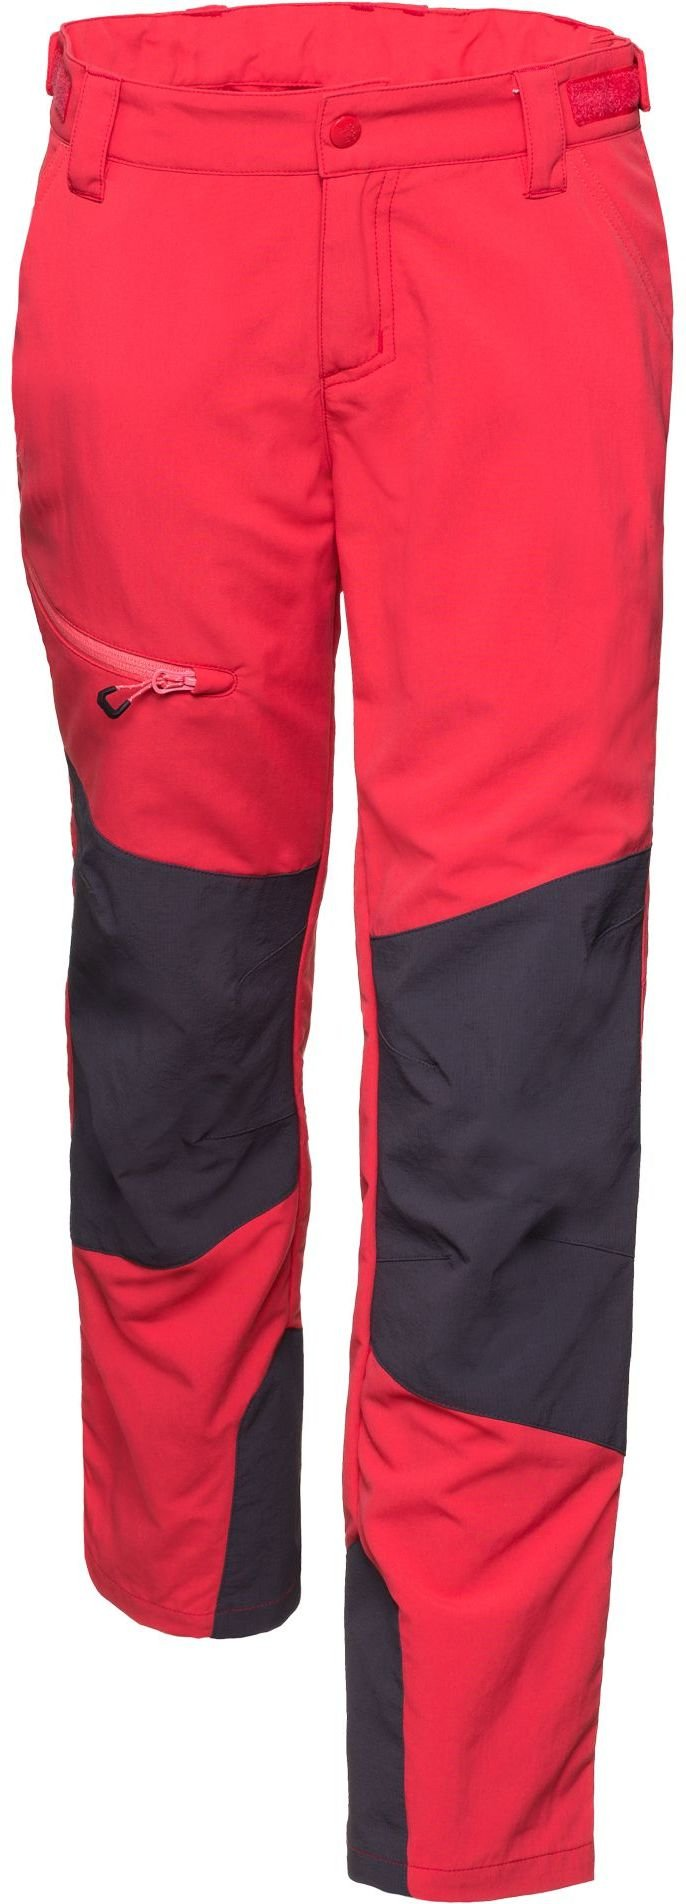 Best pris på Neomondo Blekinge Softshell Pant (Junior) Se